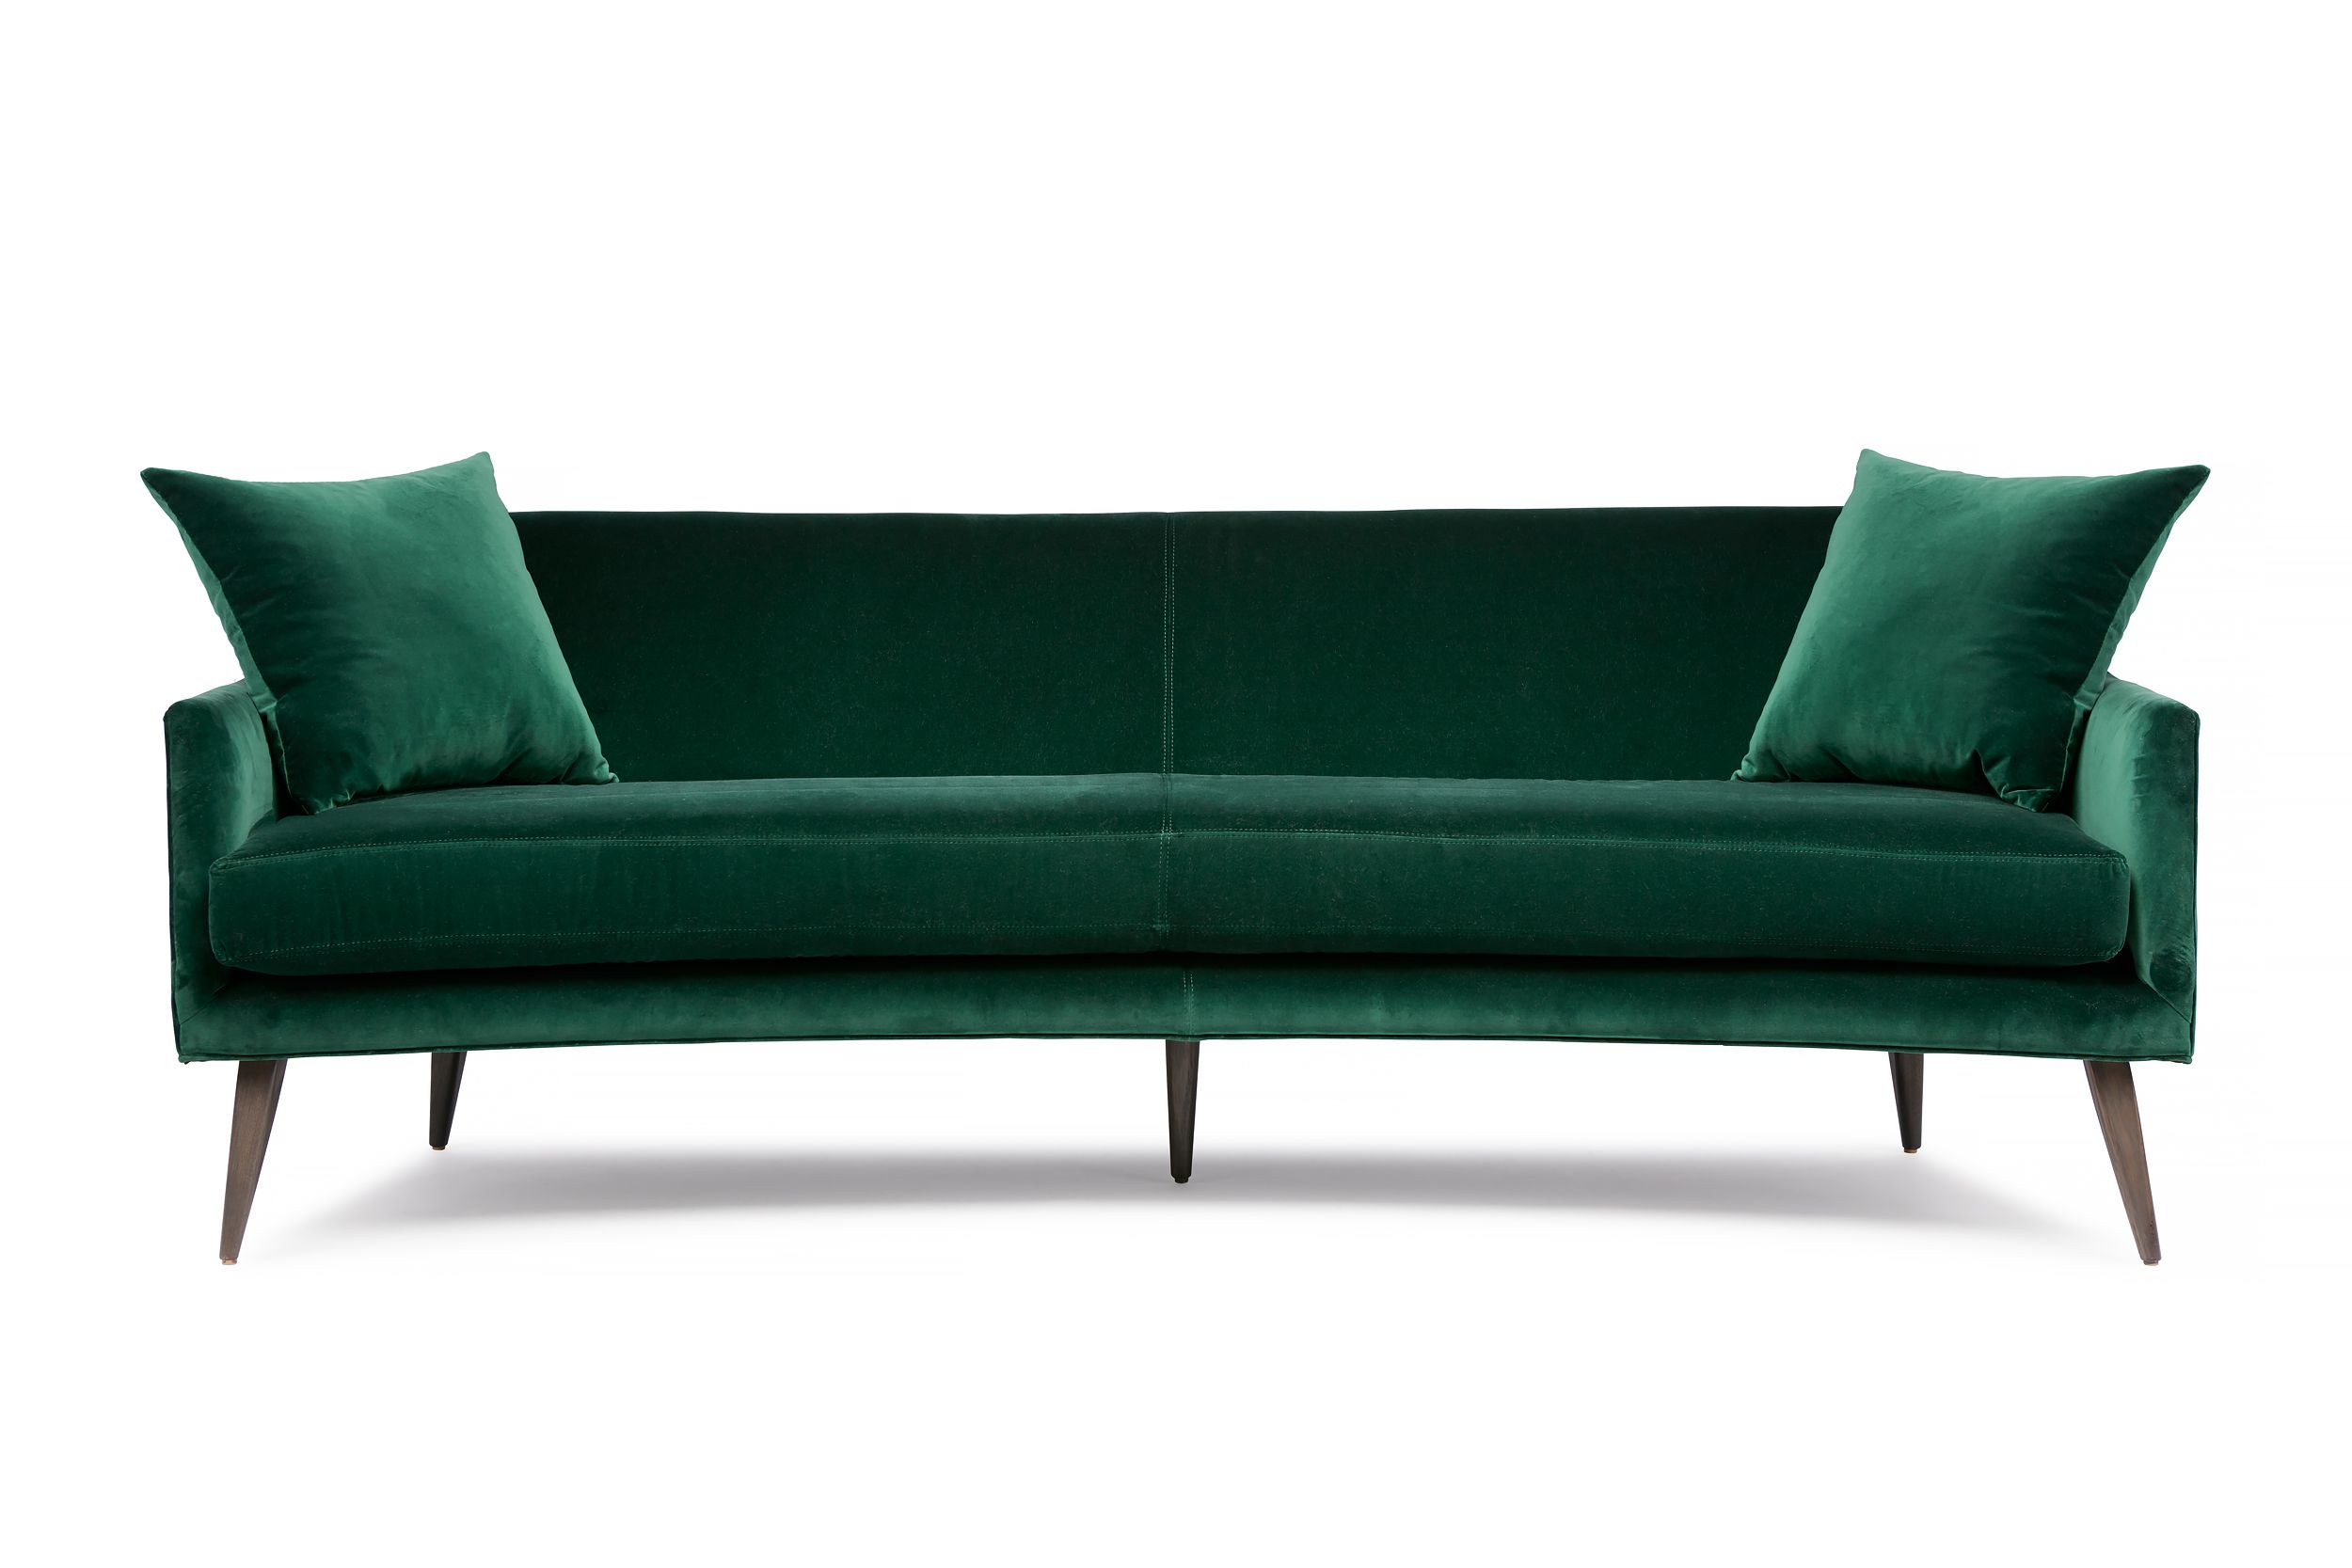 Best Quality Sofas Australia Teal Sofa Bed Australia Bruin Blog